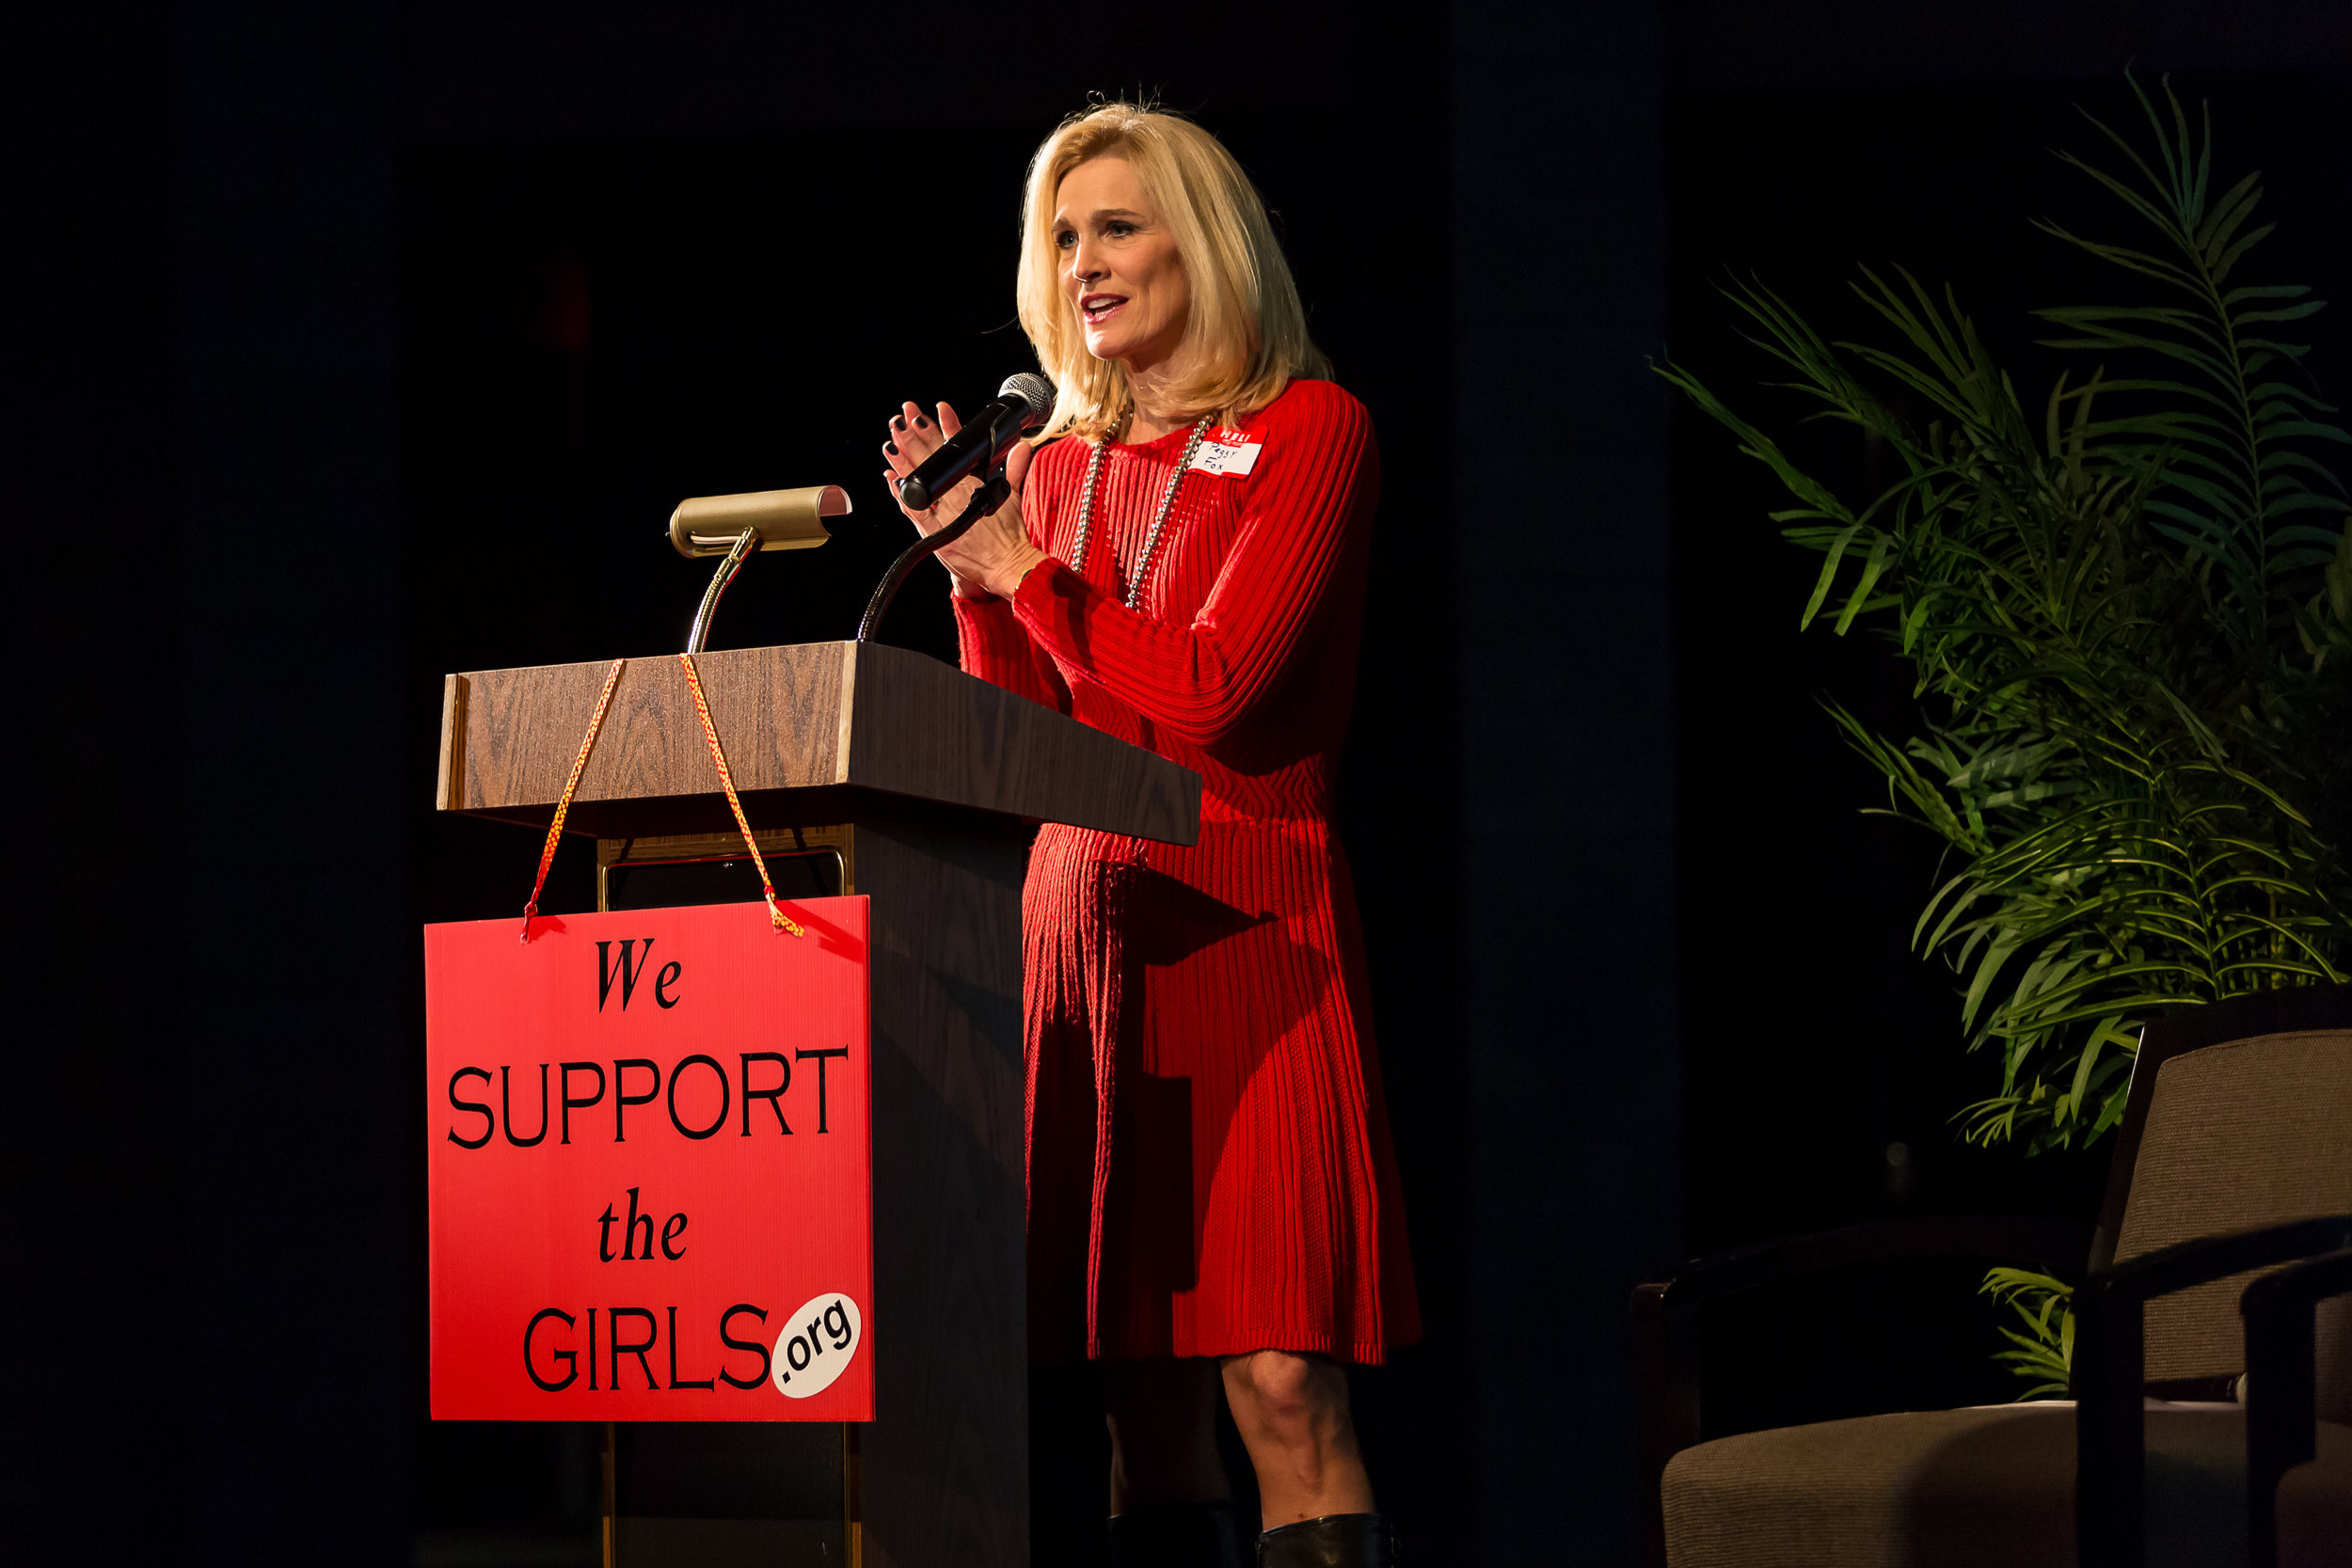 Peggy Fox, WUSA News, Breaking The Silence to End Child Sexual Abuse